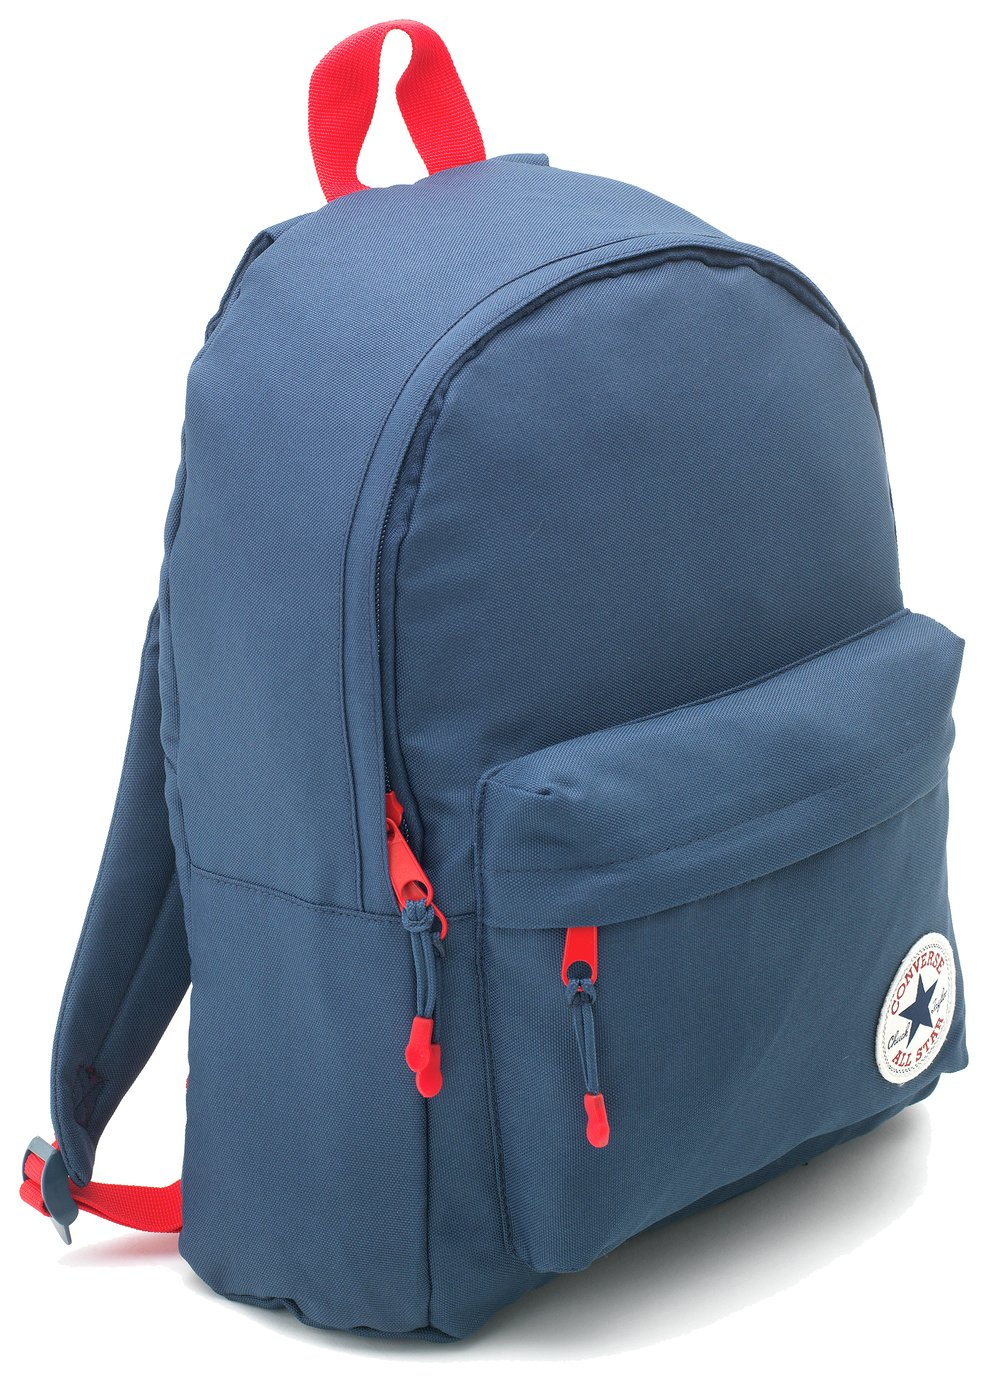 Converse All Star 14L Backpack - Navy Blue